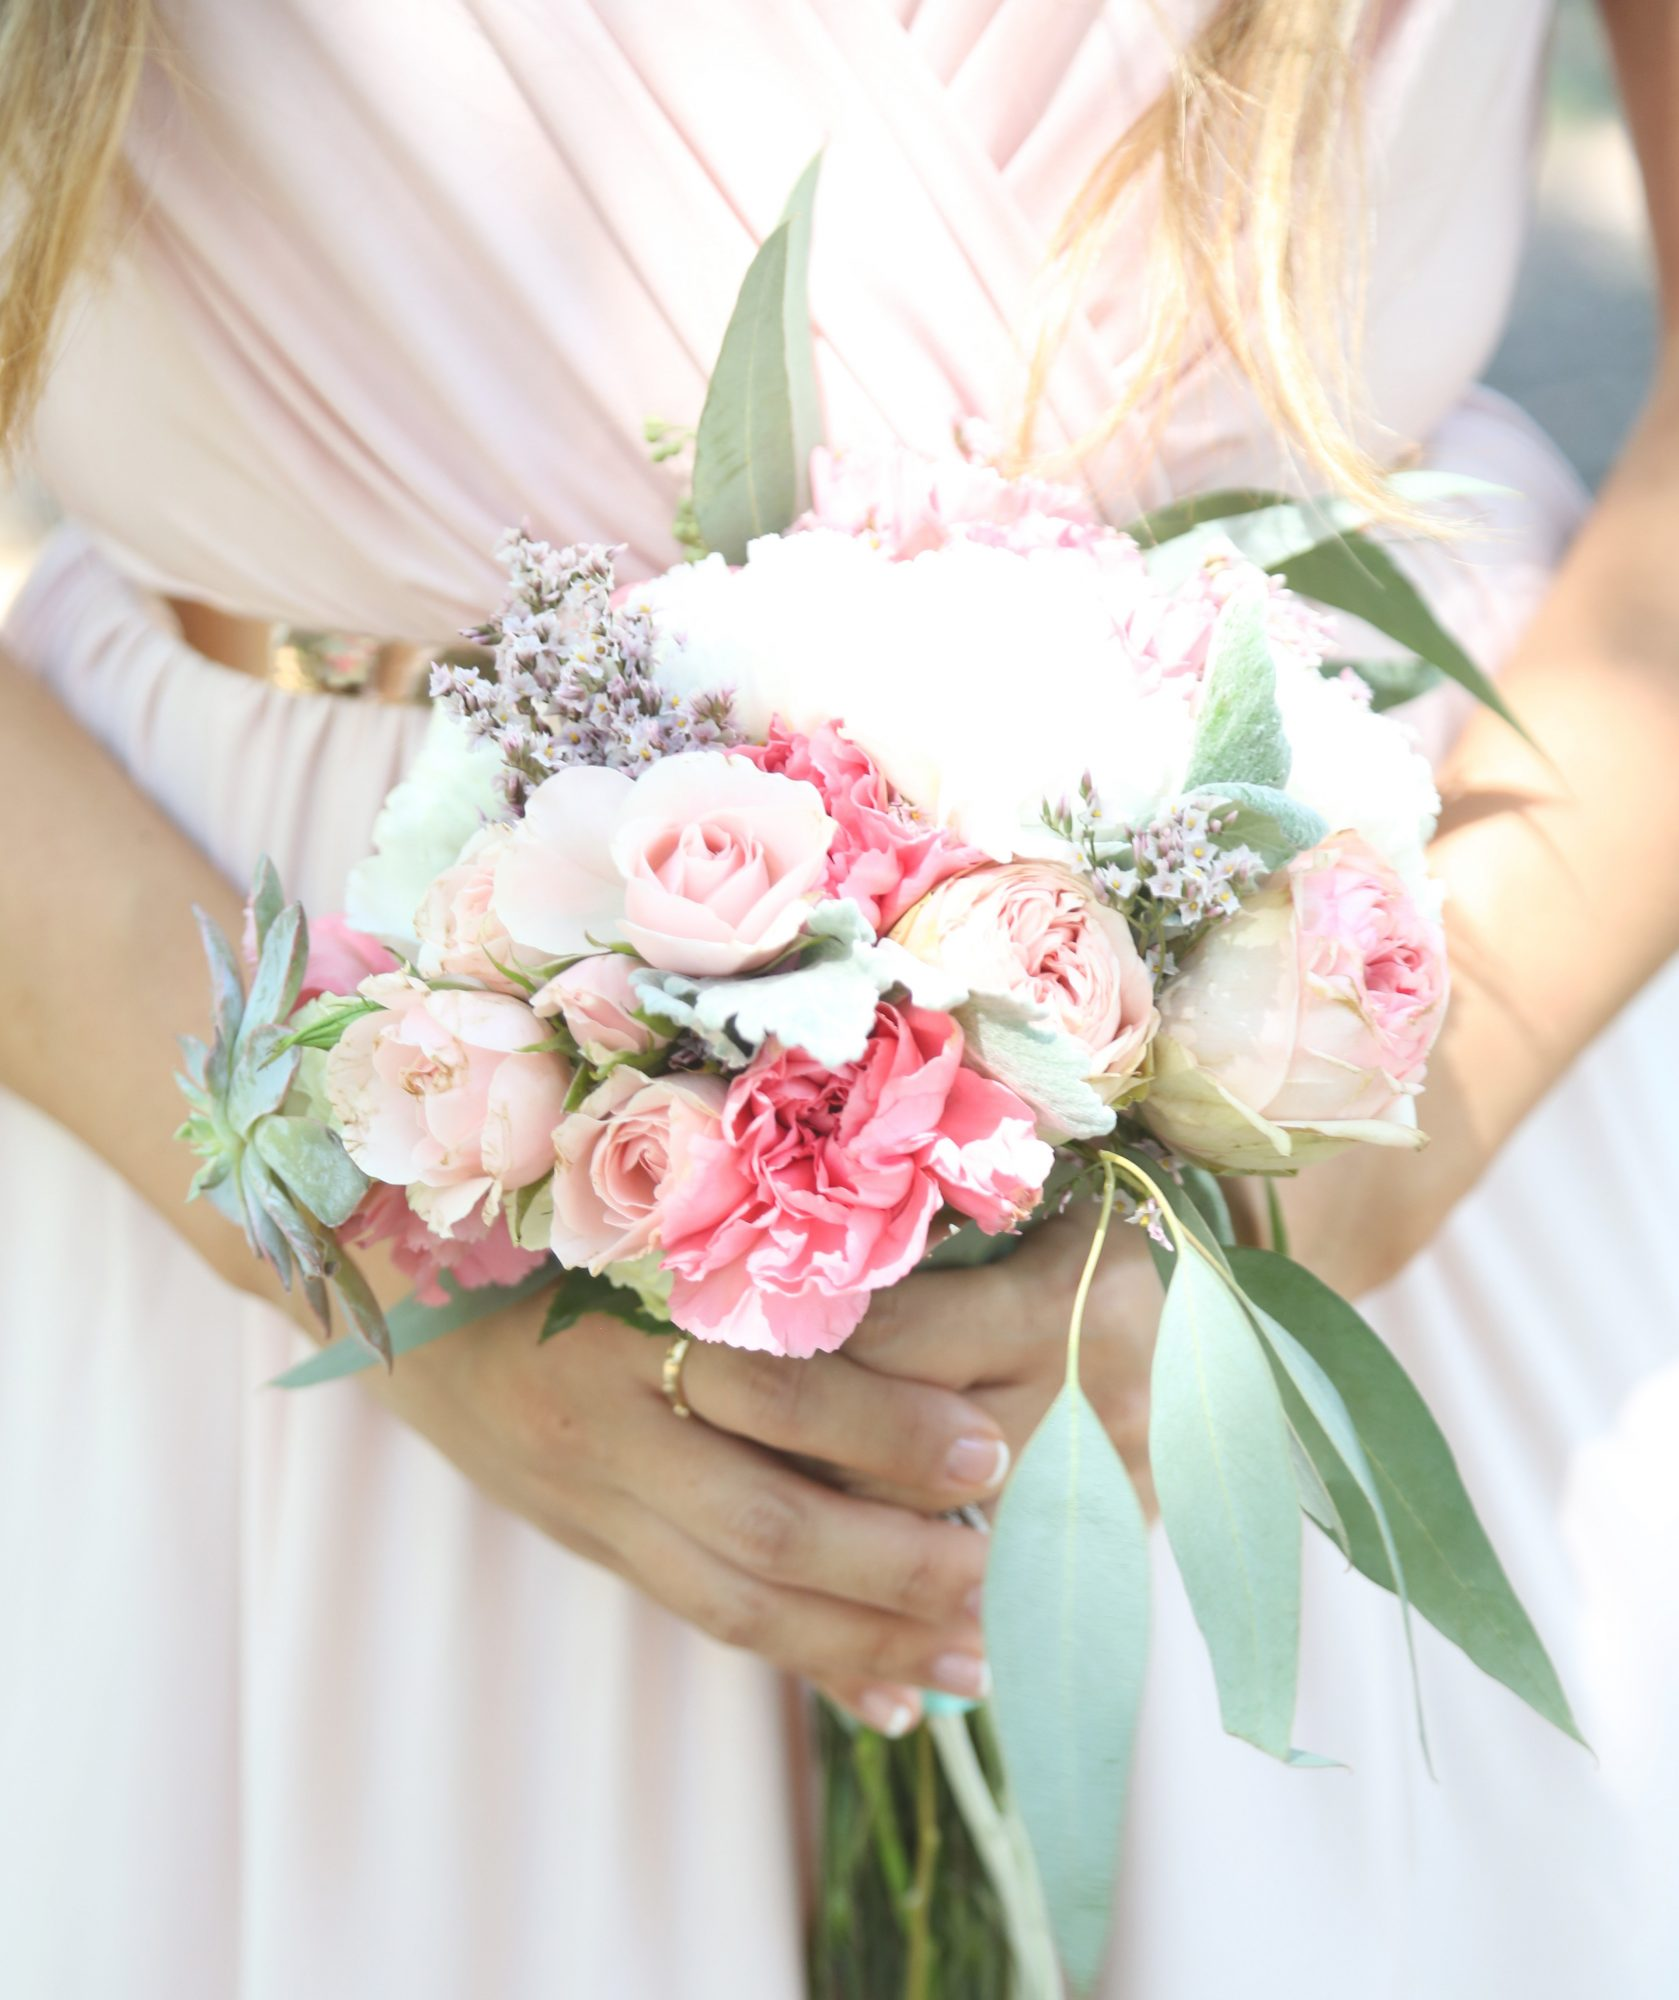 Bridesmaid Holding Flowers Close Up